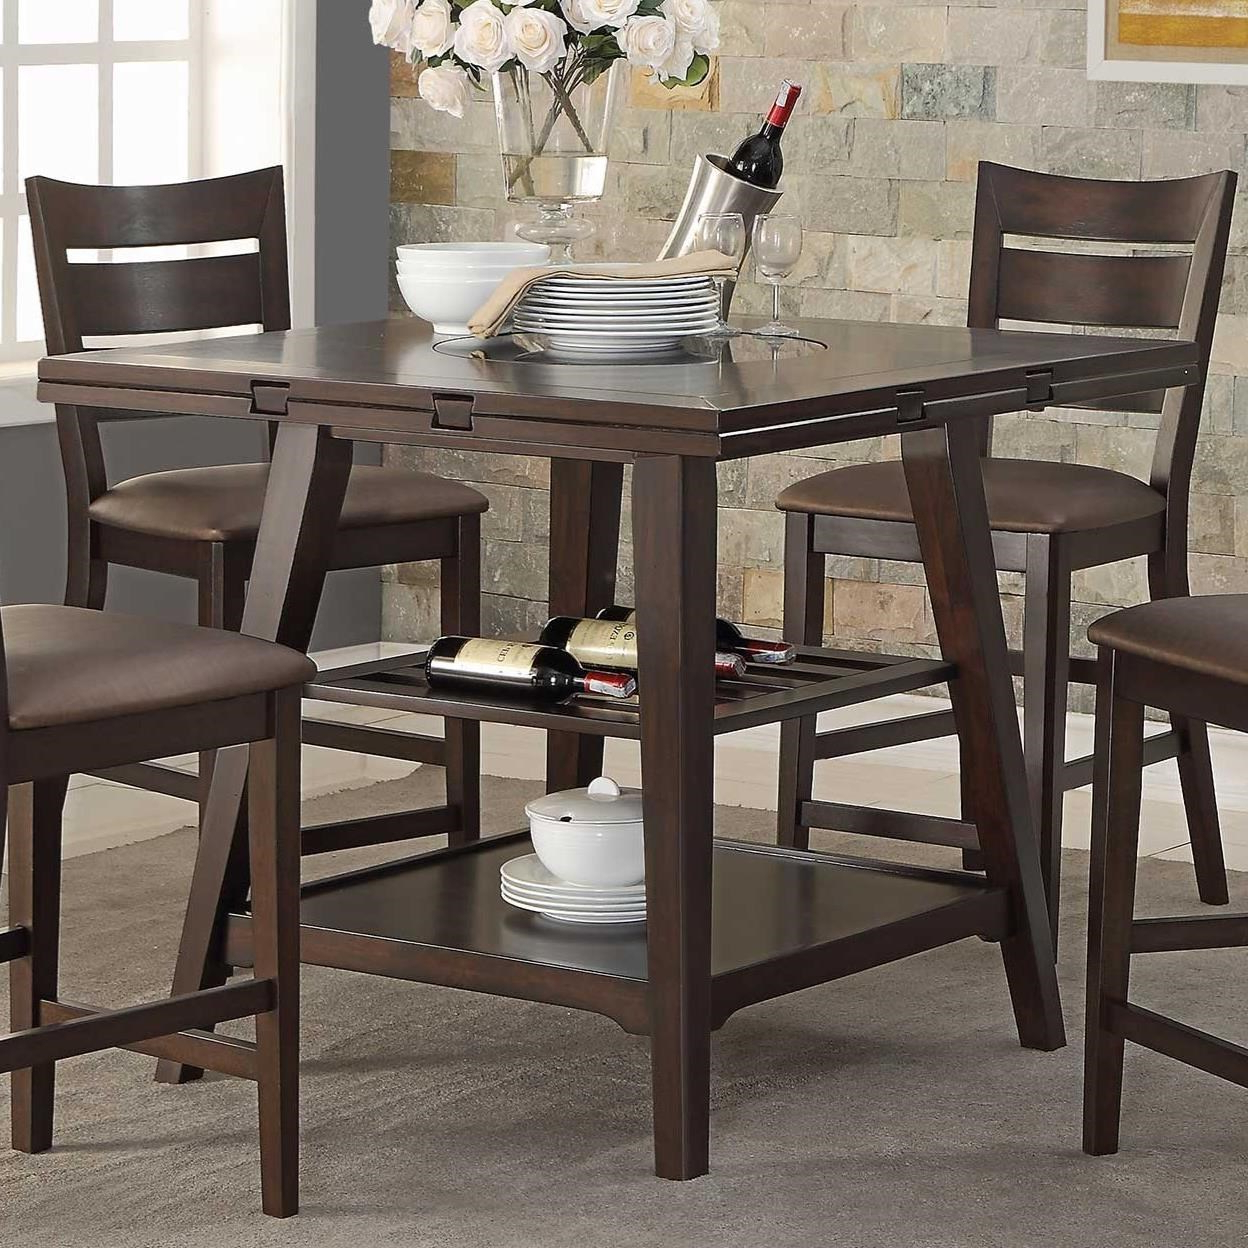 Transitional 4 Seating Drop Leaf Casual Dining Tables With Regard To Most Popular Winners Only Parkside Drop Leaf Counter Height Table With (View 23 of 30)